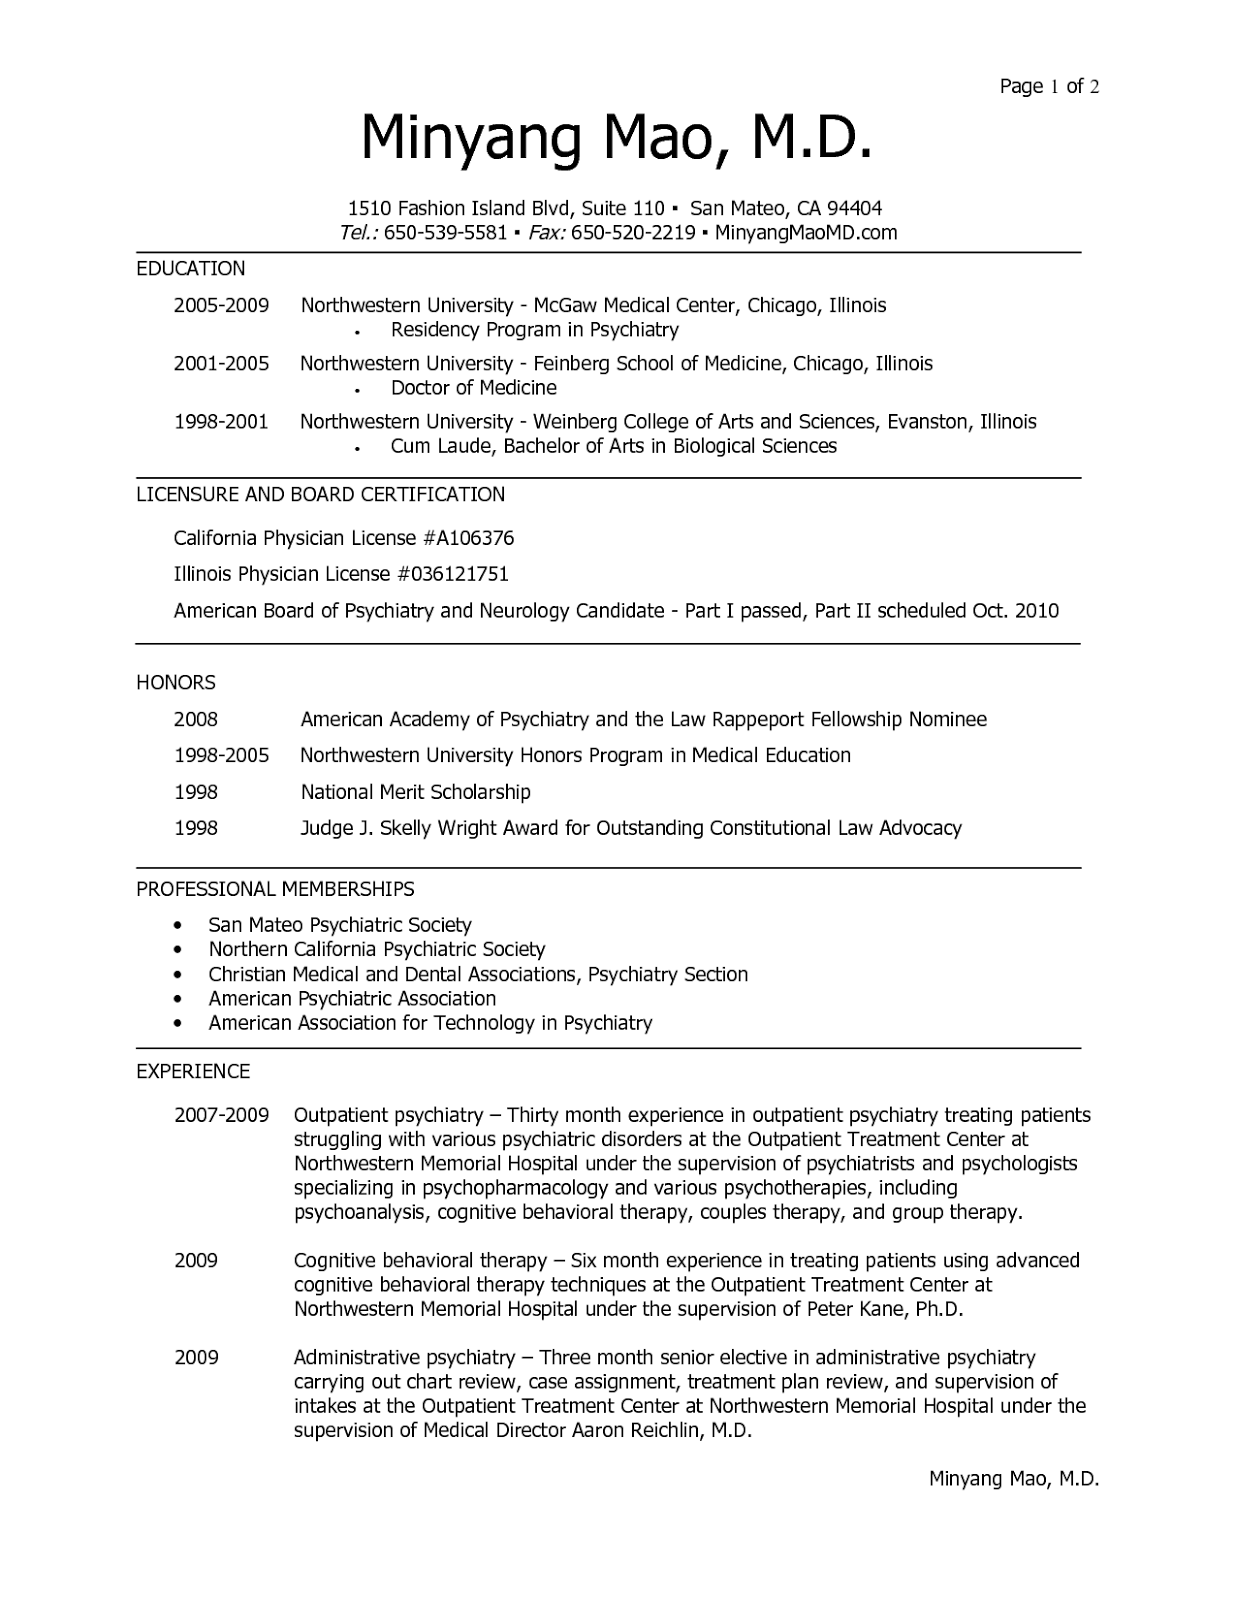 medical student resume sample - Medical Resume Examples